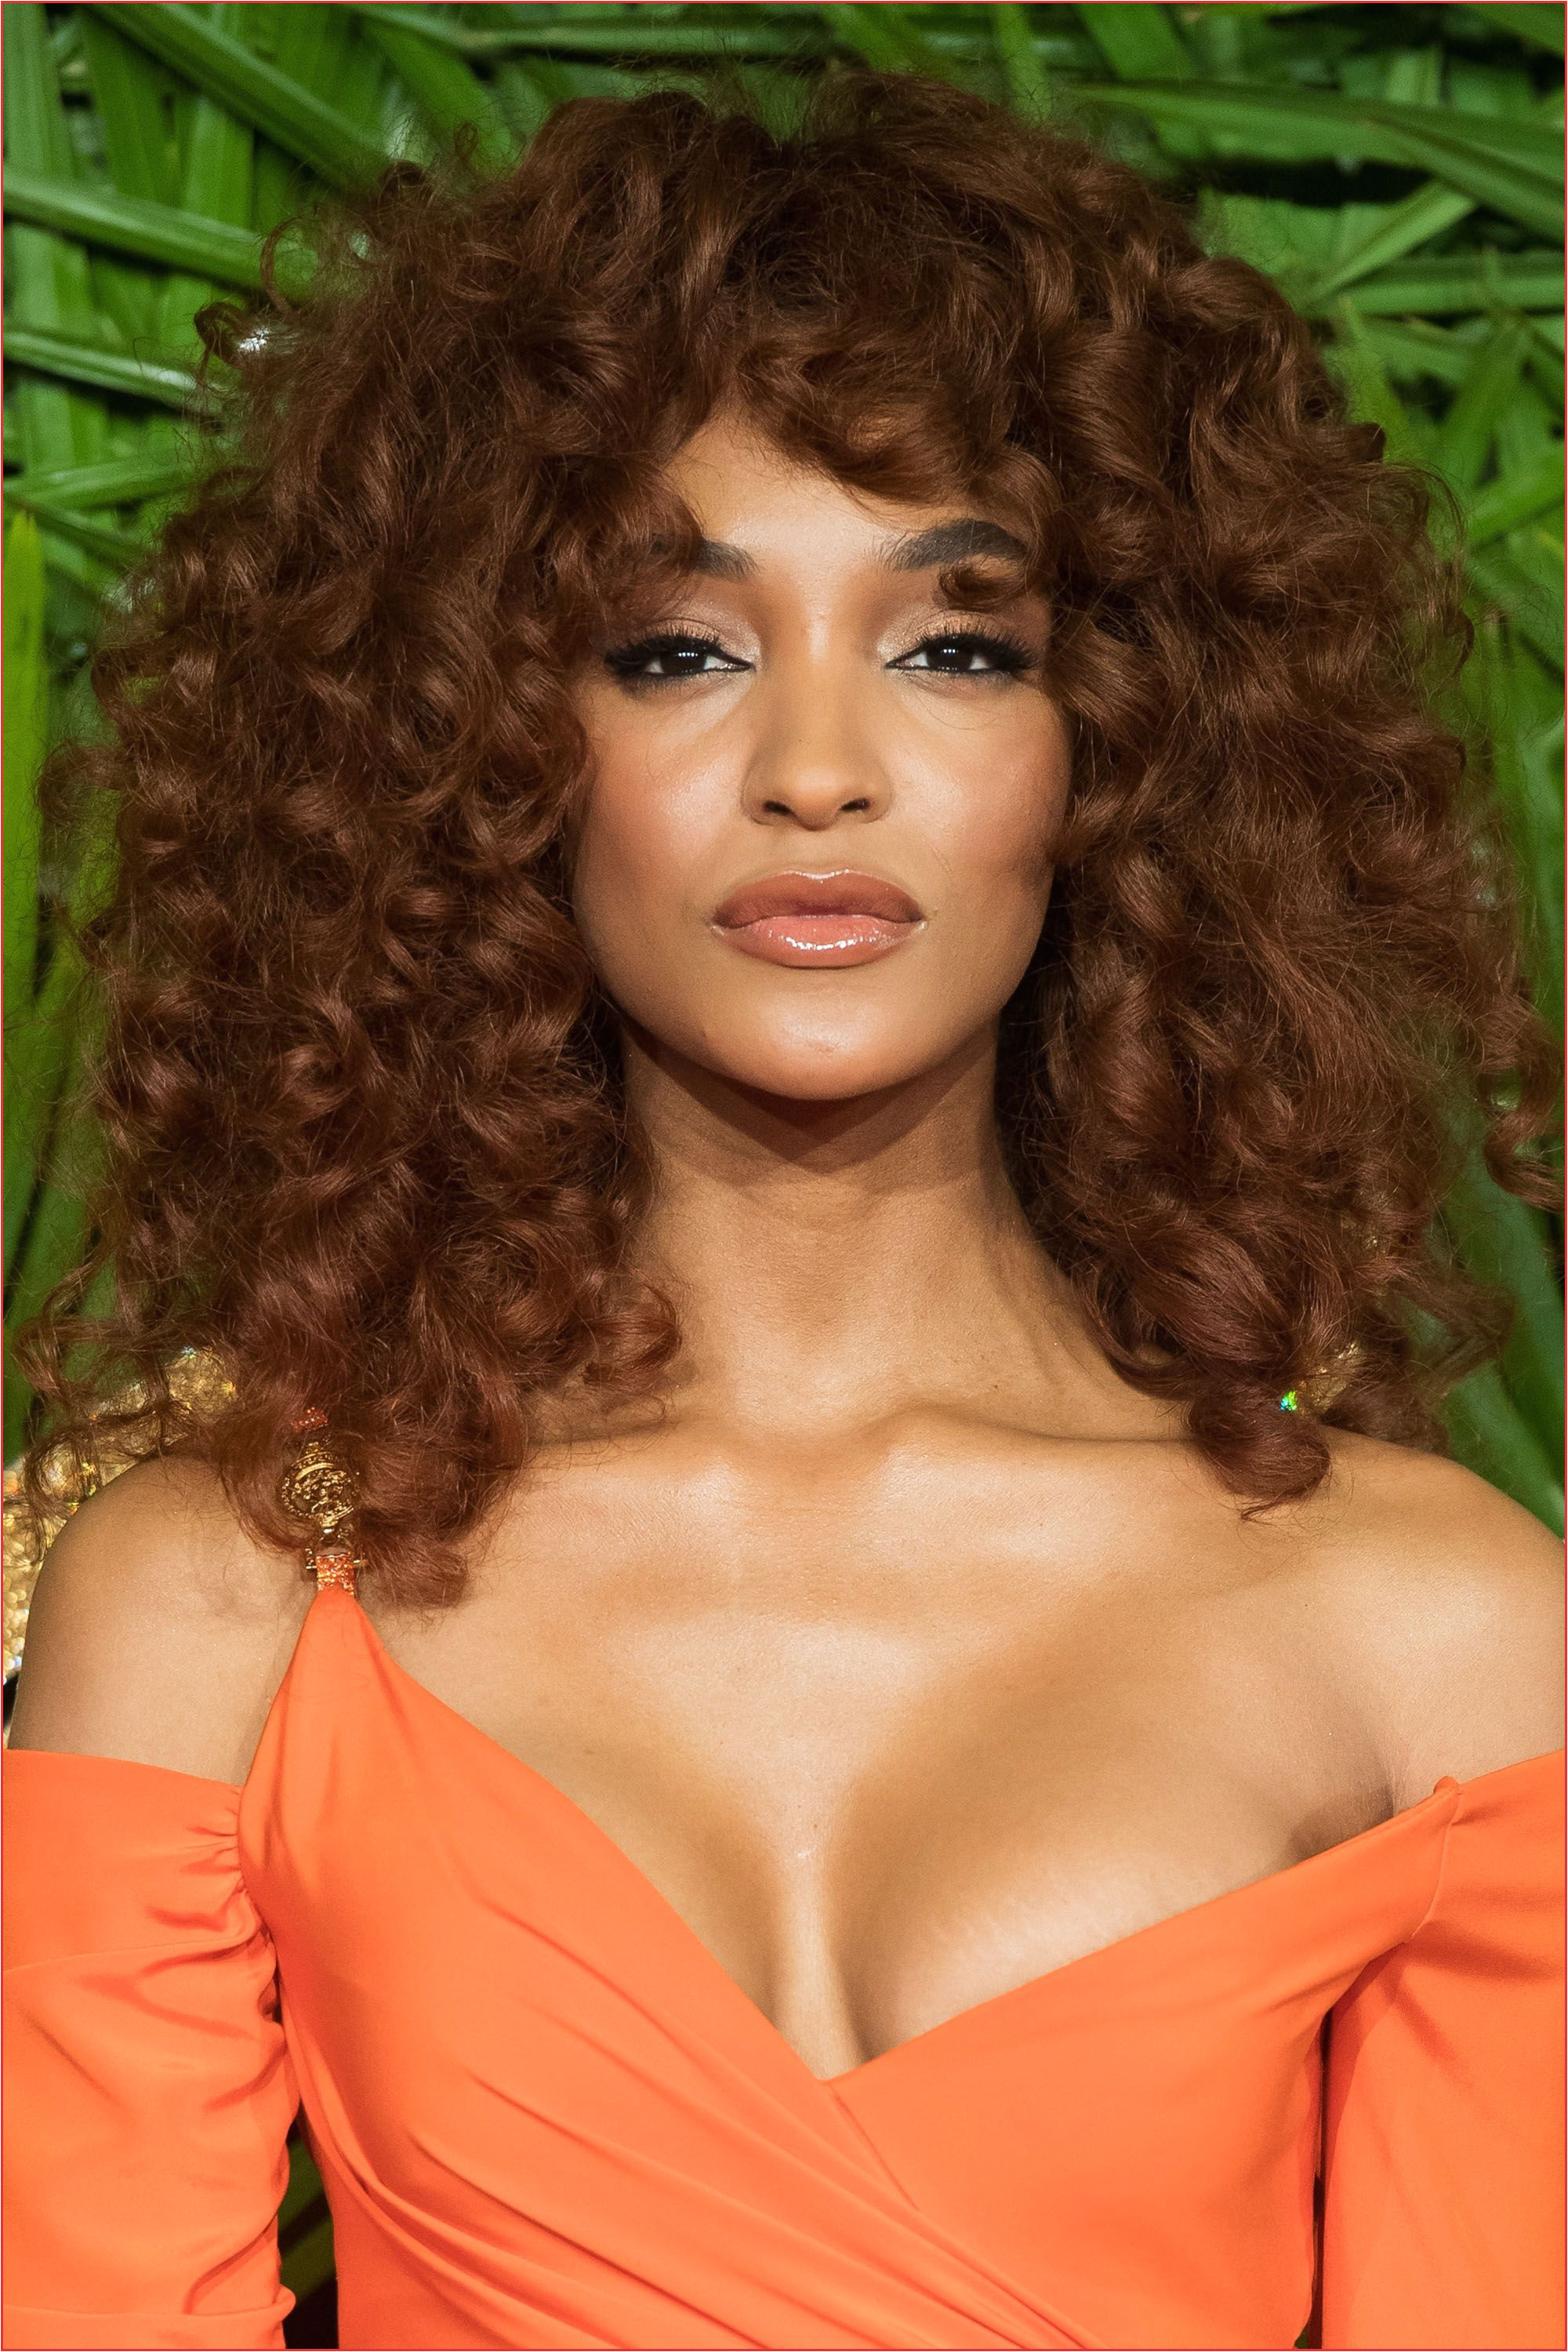 Cute Easy Hairstyles for School Inspired Cute Curly Hairstyles Tumblr Curly Hair Obraz Od Sharleen Na